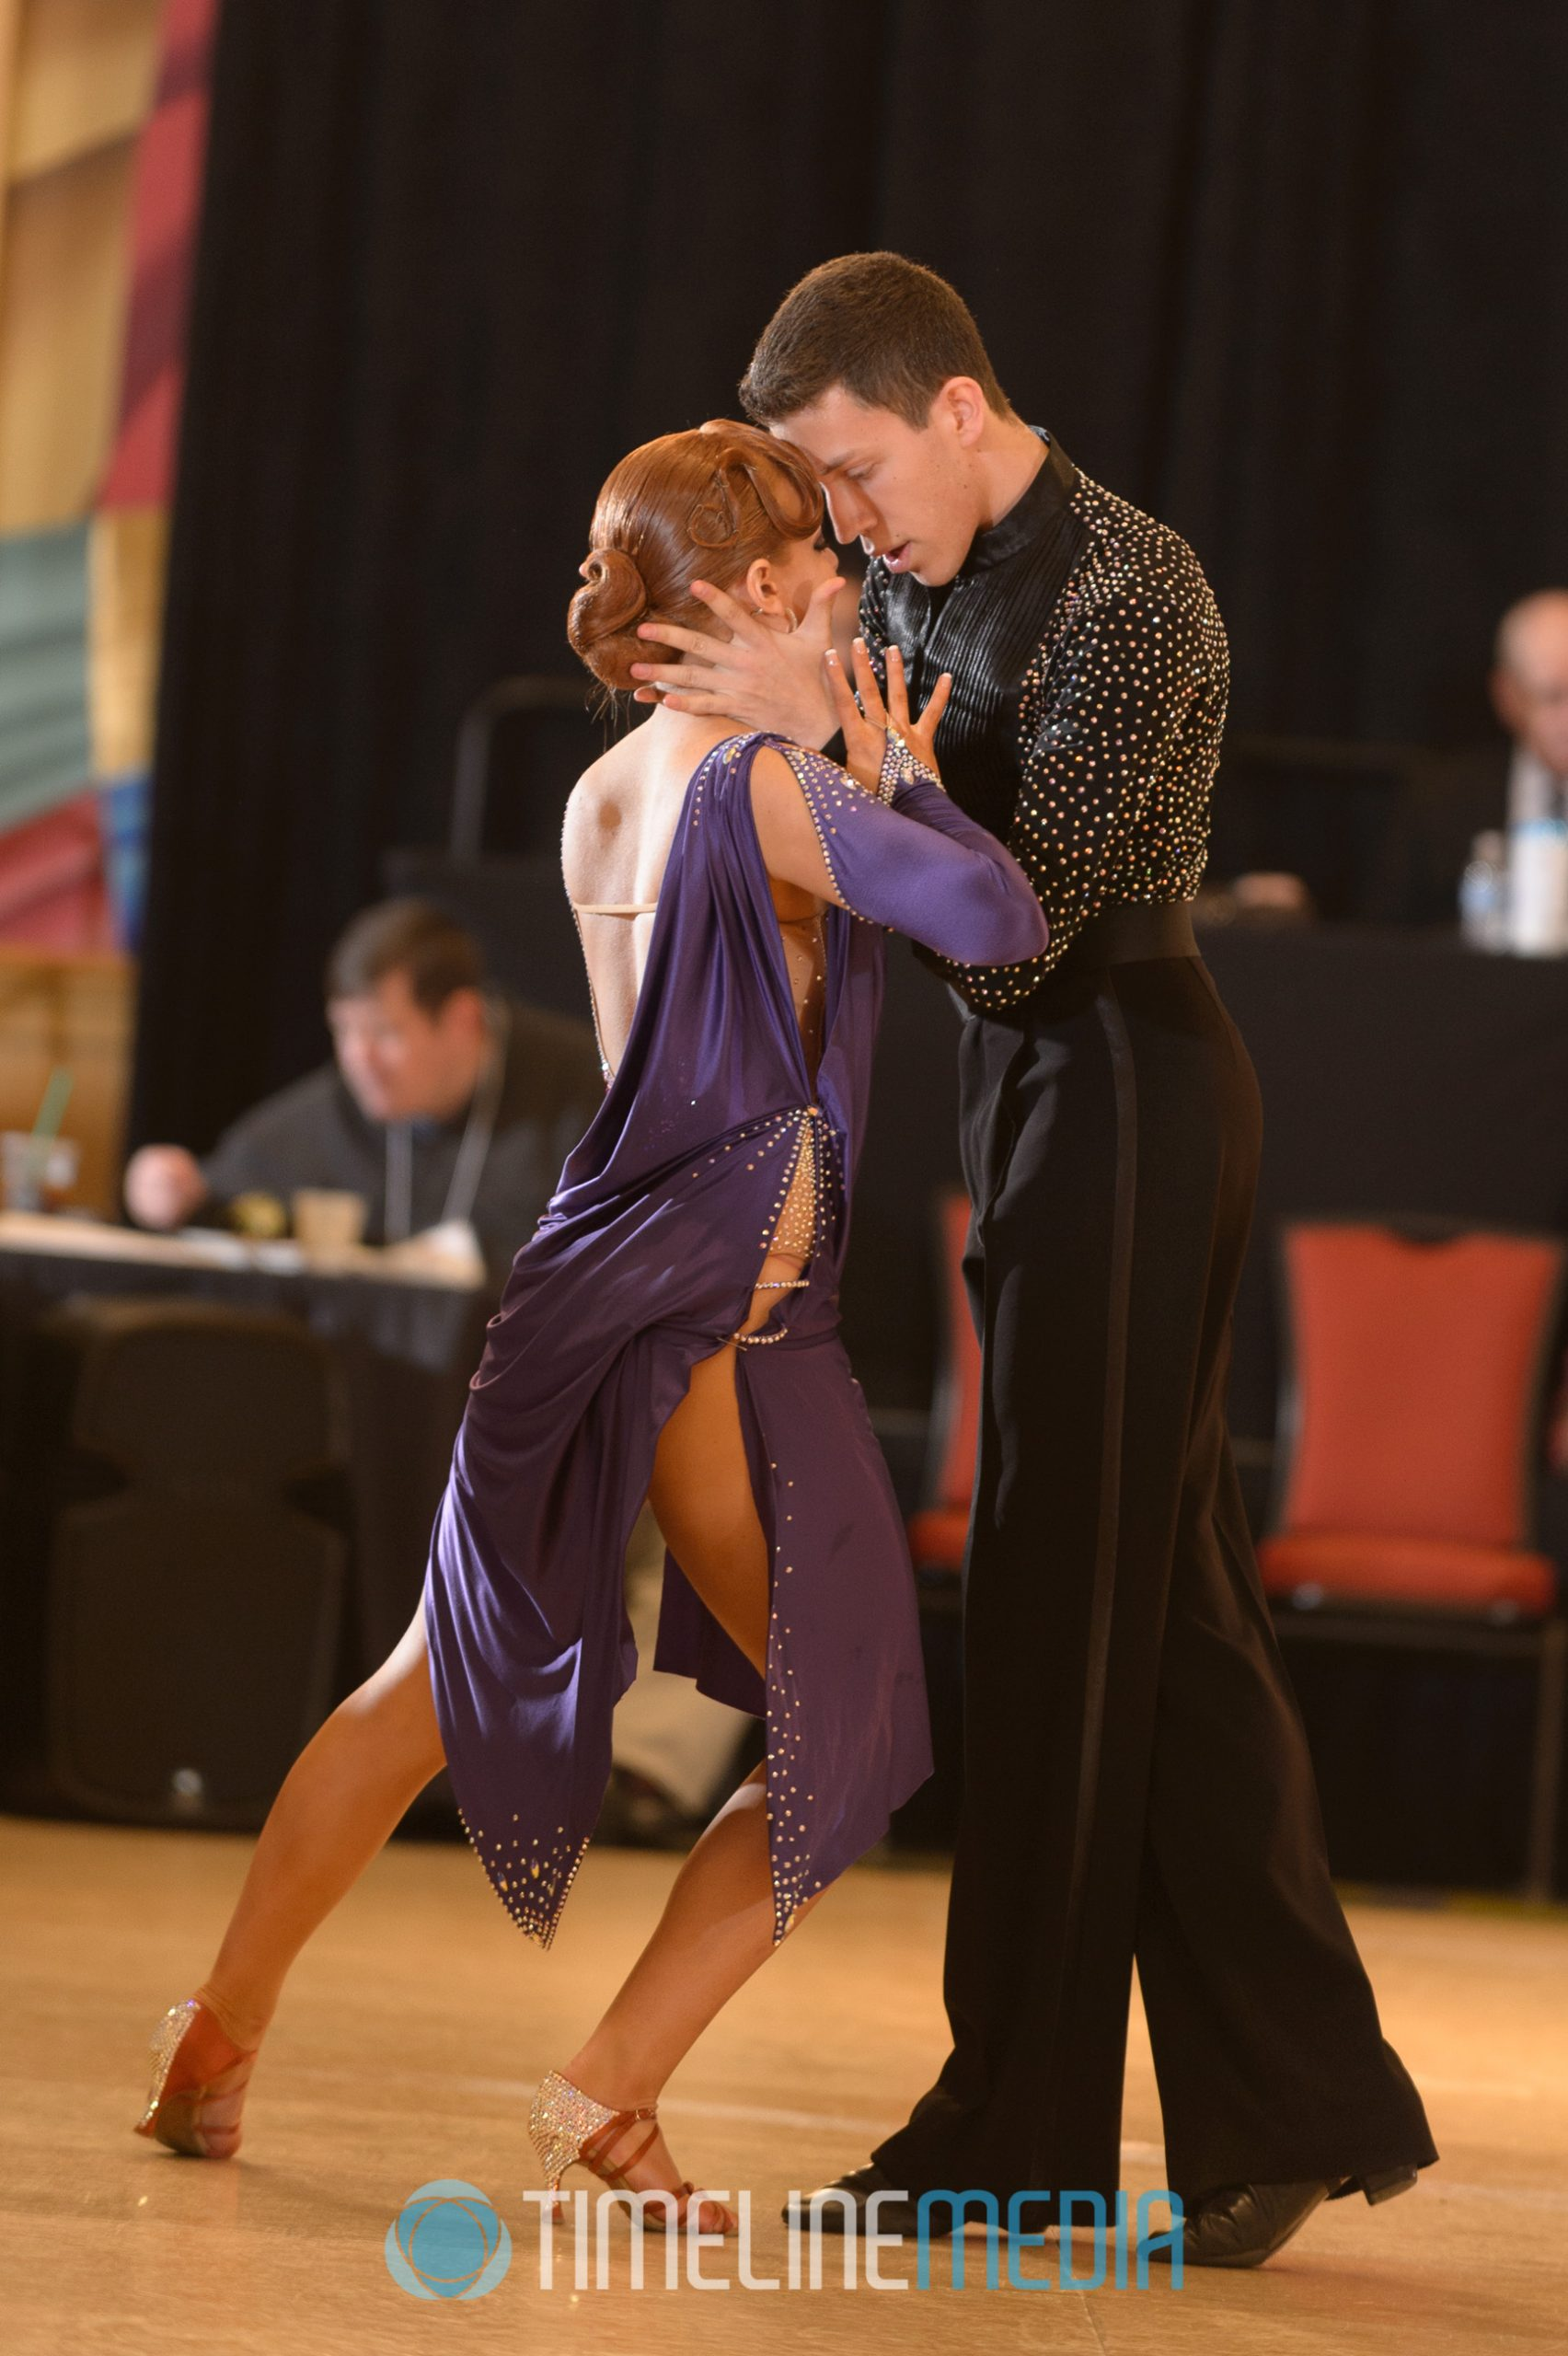 2016 USA Dance Released - Dancers compete at the USA Dance Mid-Atlantic Championships ©TimeLine Media